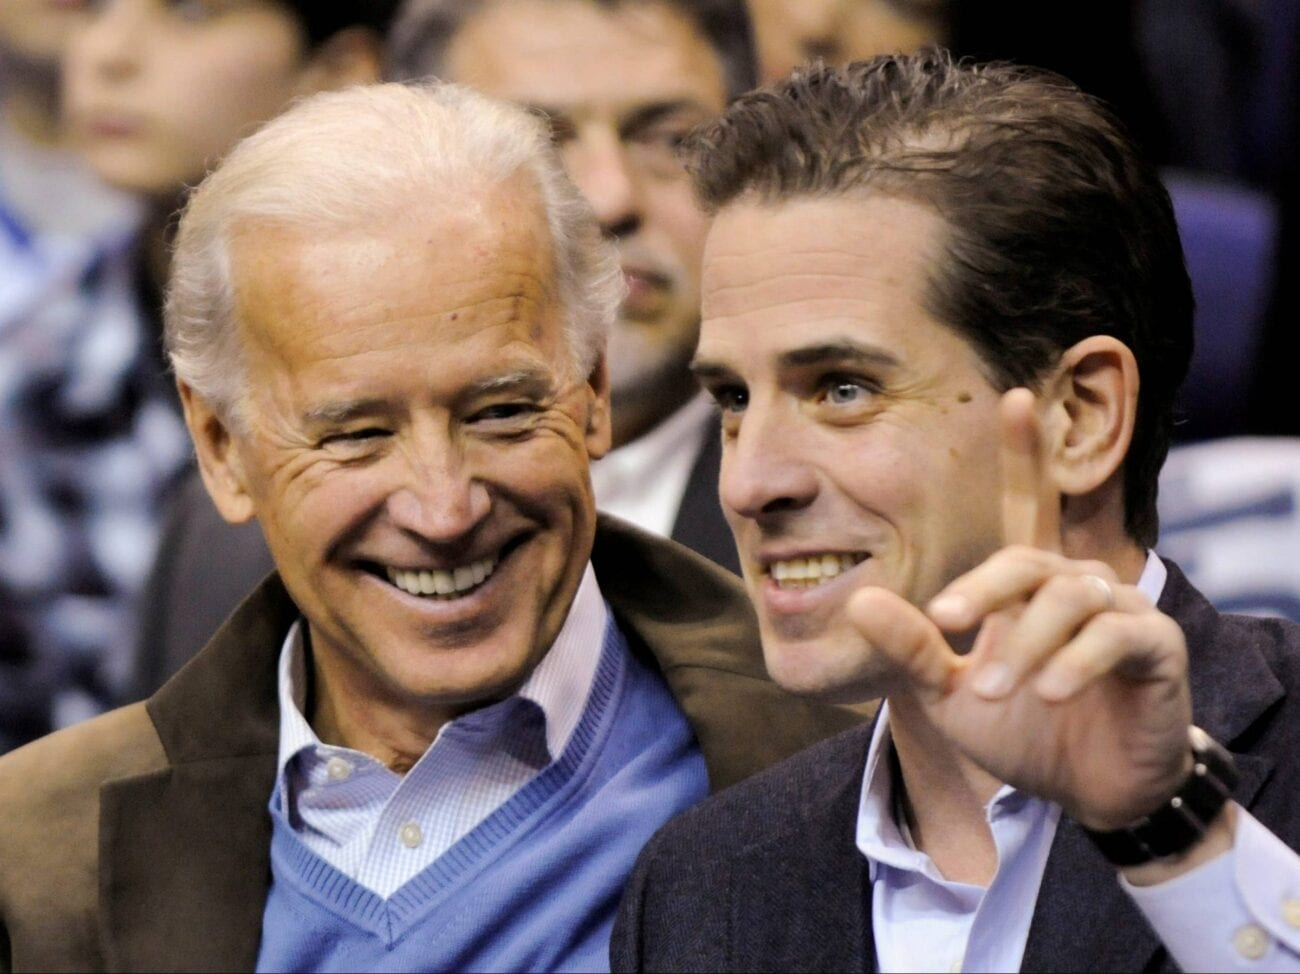 Whether it's his father or his wife, Hunter Biden is always at the center of controversy. What should you know about the life of Hunter Biden?